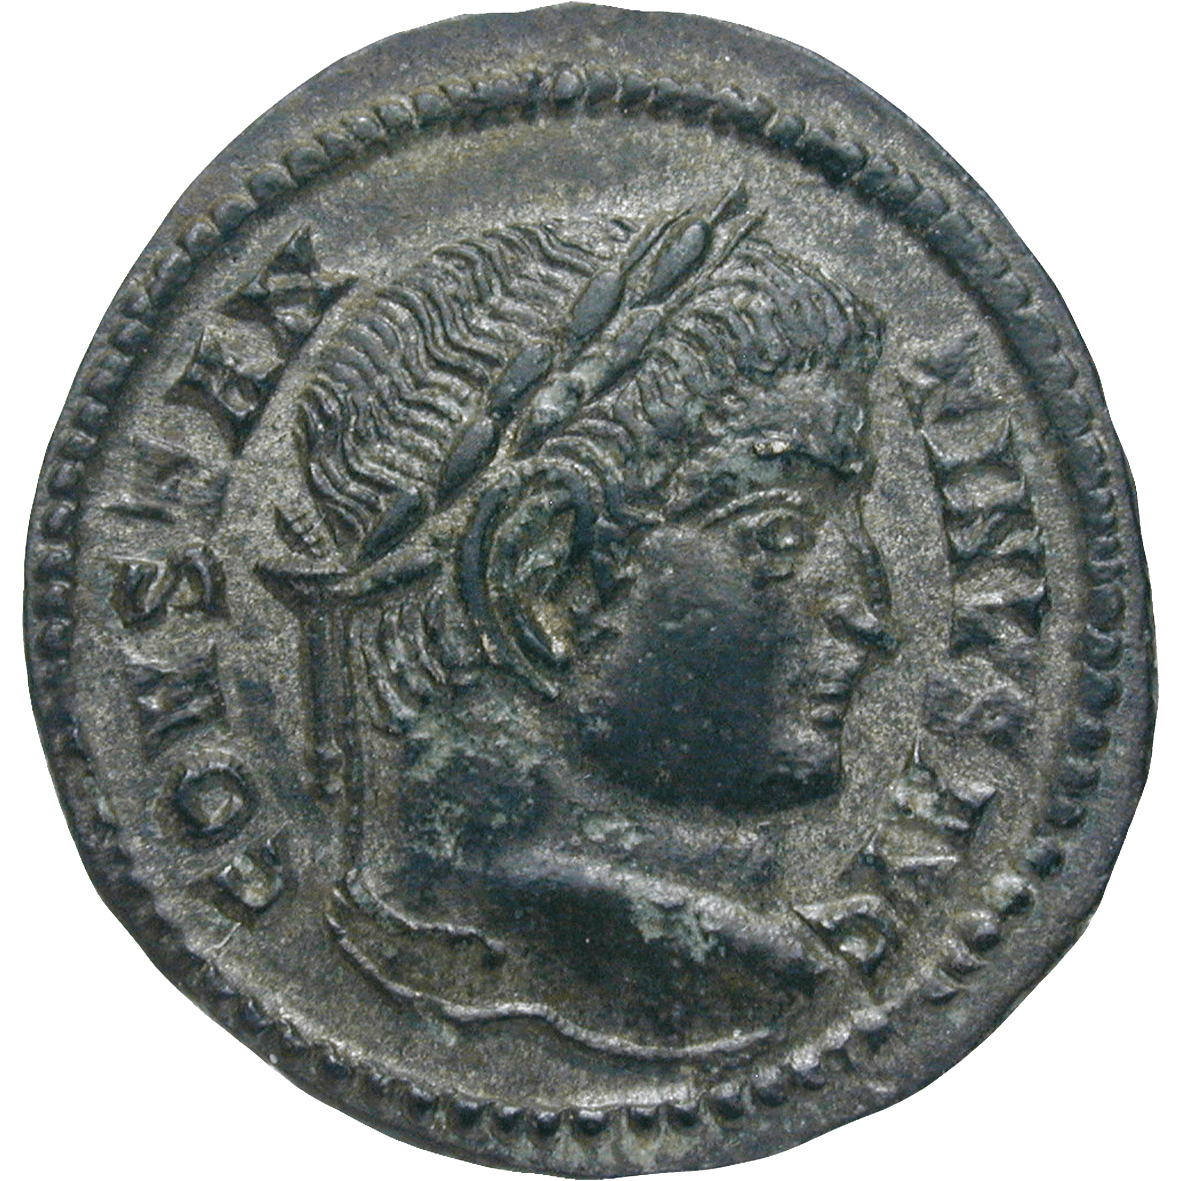 Roman Empire, Constantine the Great, Bronze Coin (obverse)